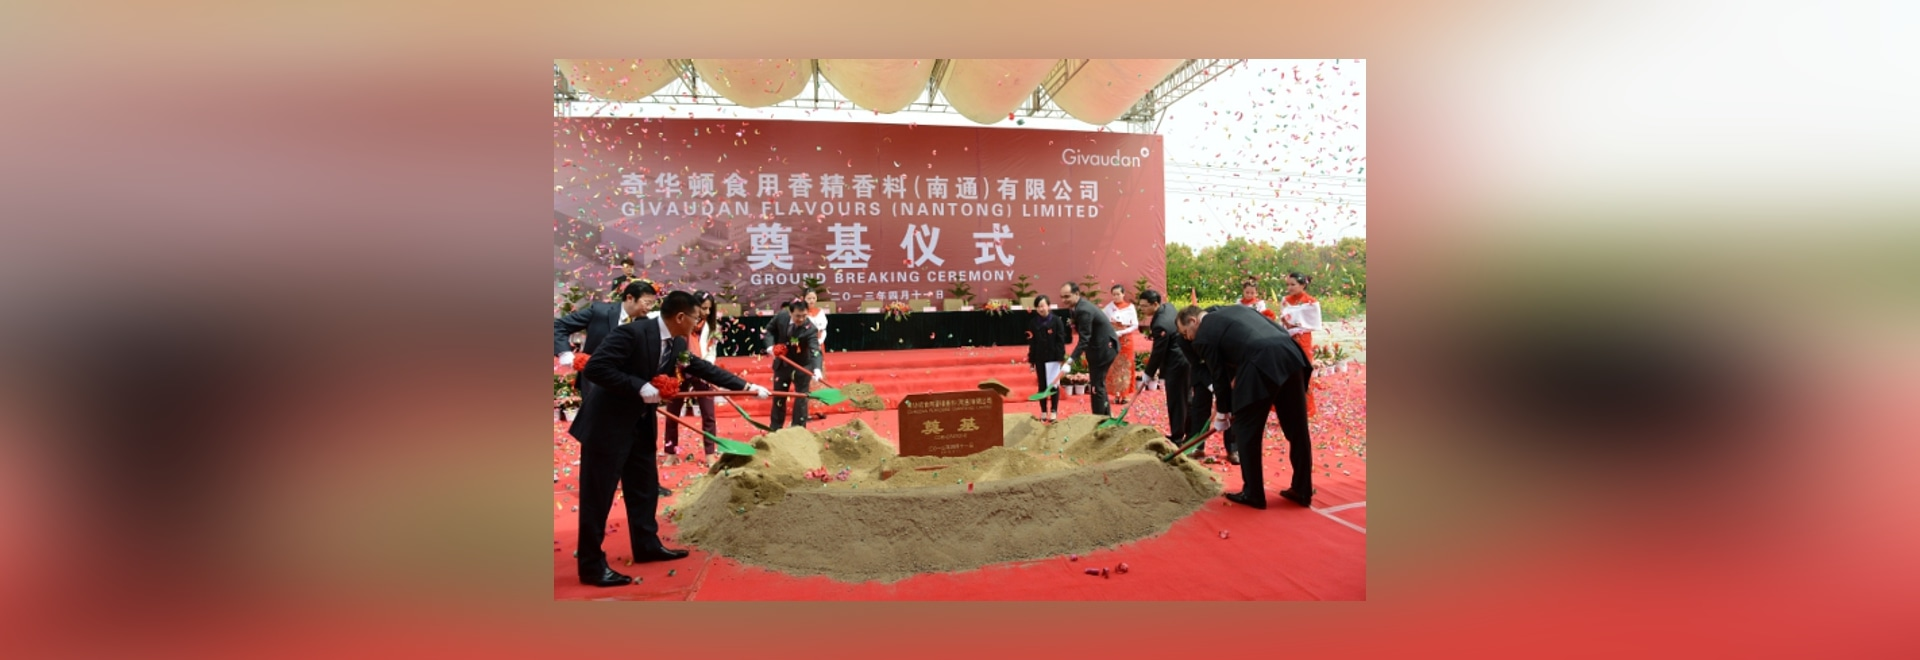 The groundbreaking ceremony for the new manufacturing facility was conducted in April 2013.